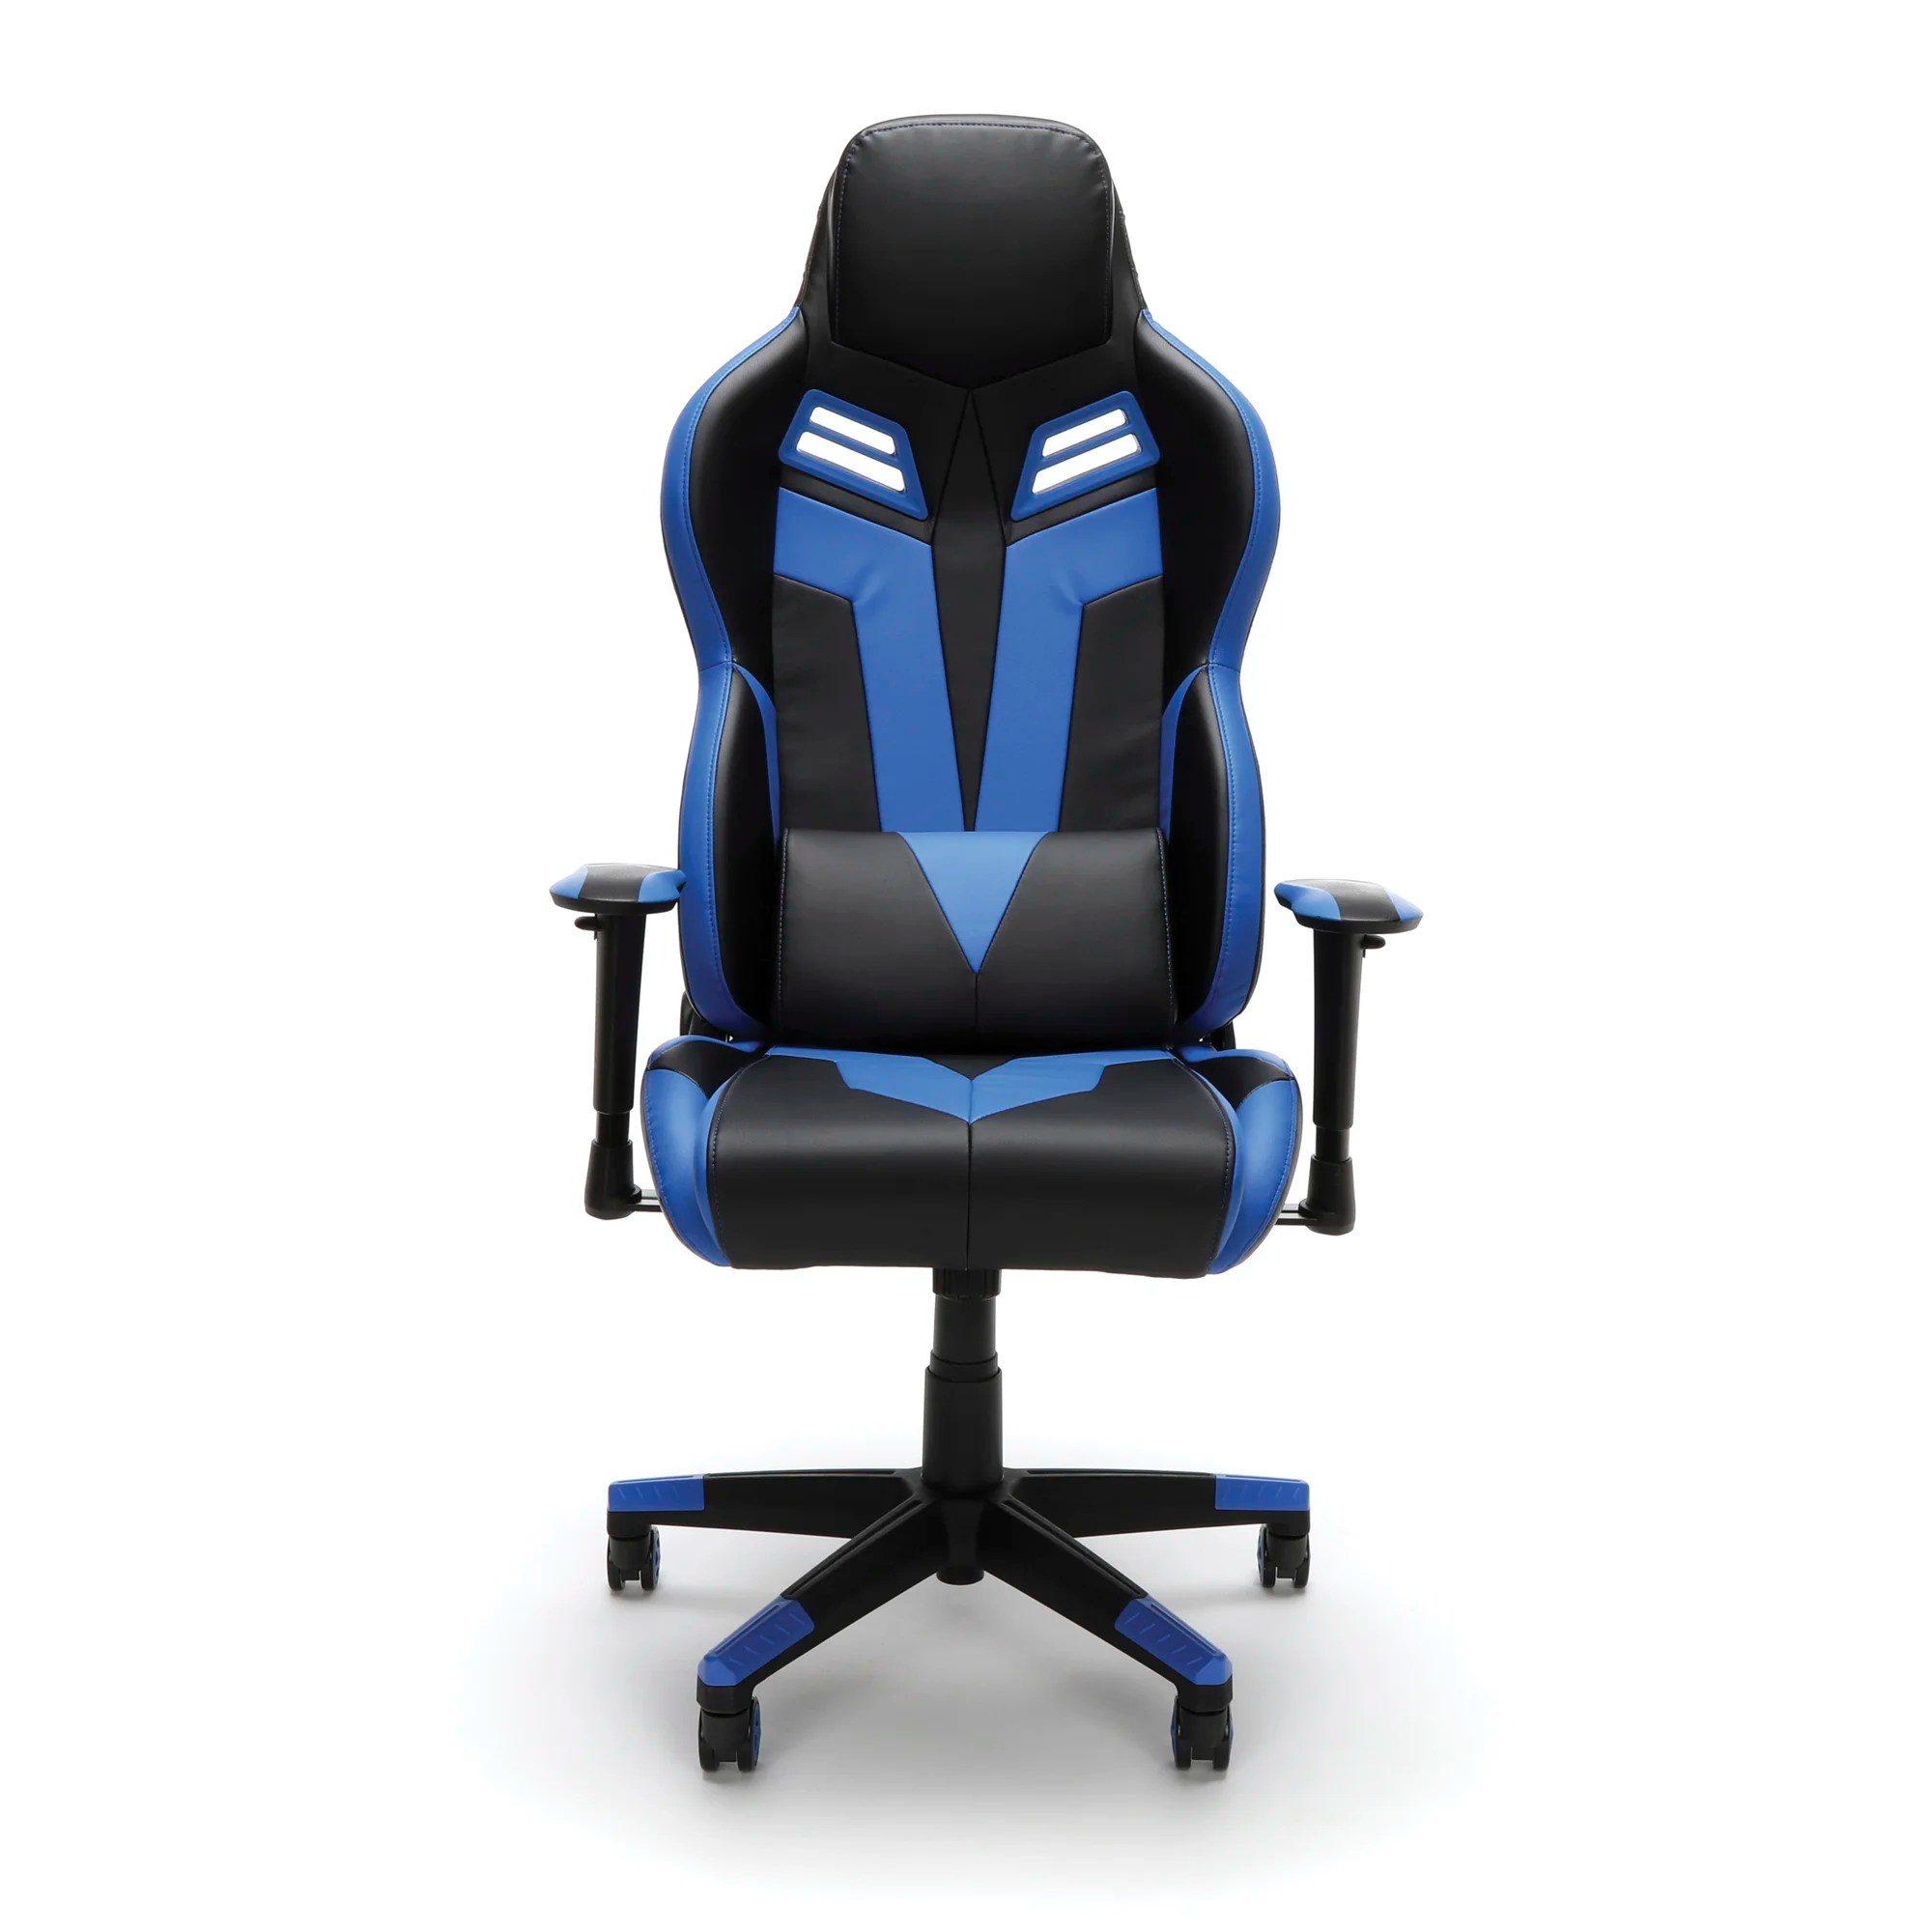 Gaming Sessel Ebay Details About Respawn Racing Style Gaming Chair